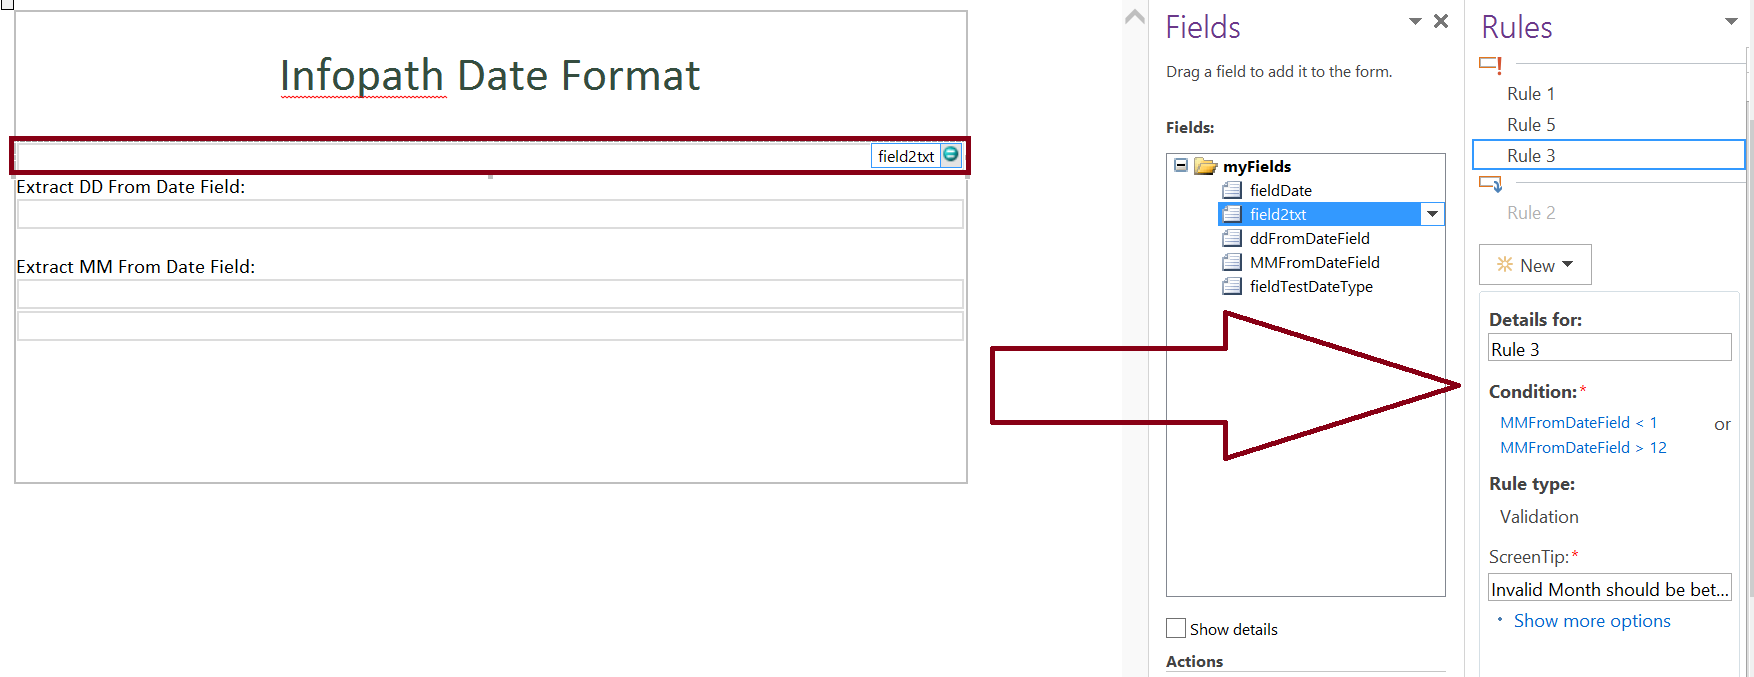 Date format validation in infopath form - month part